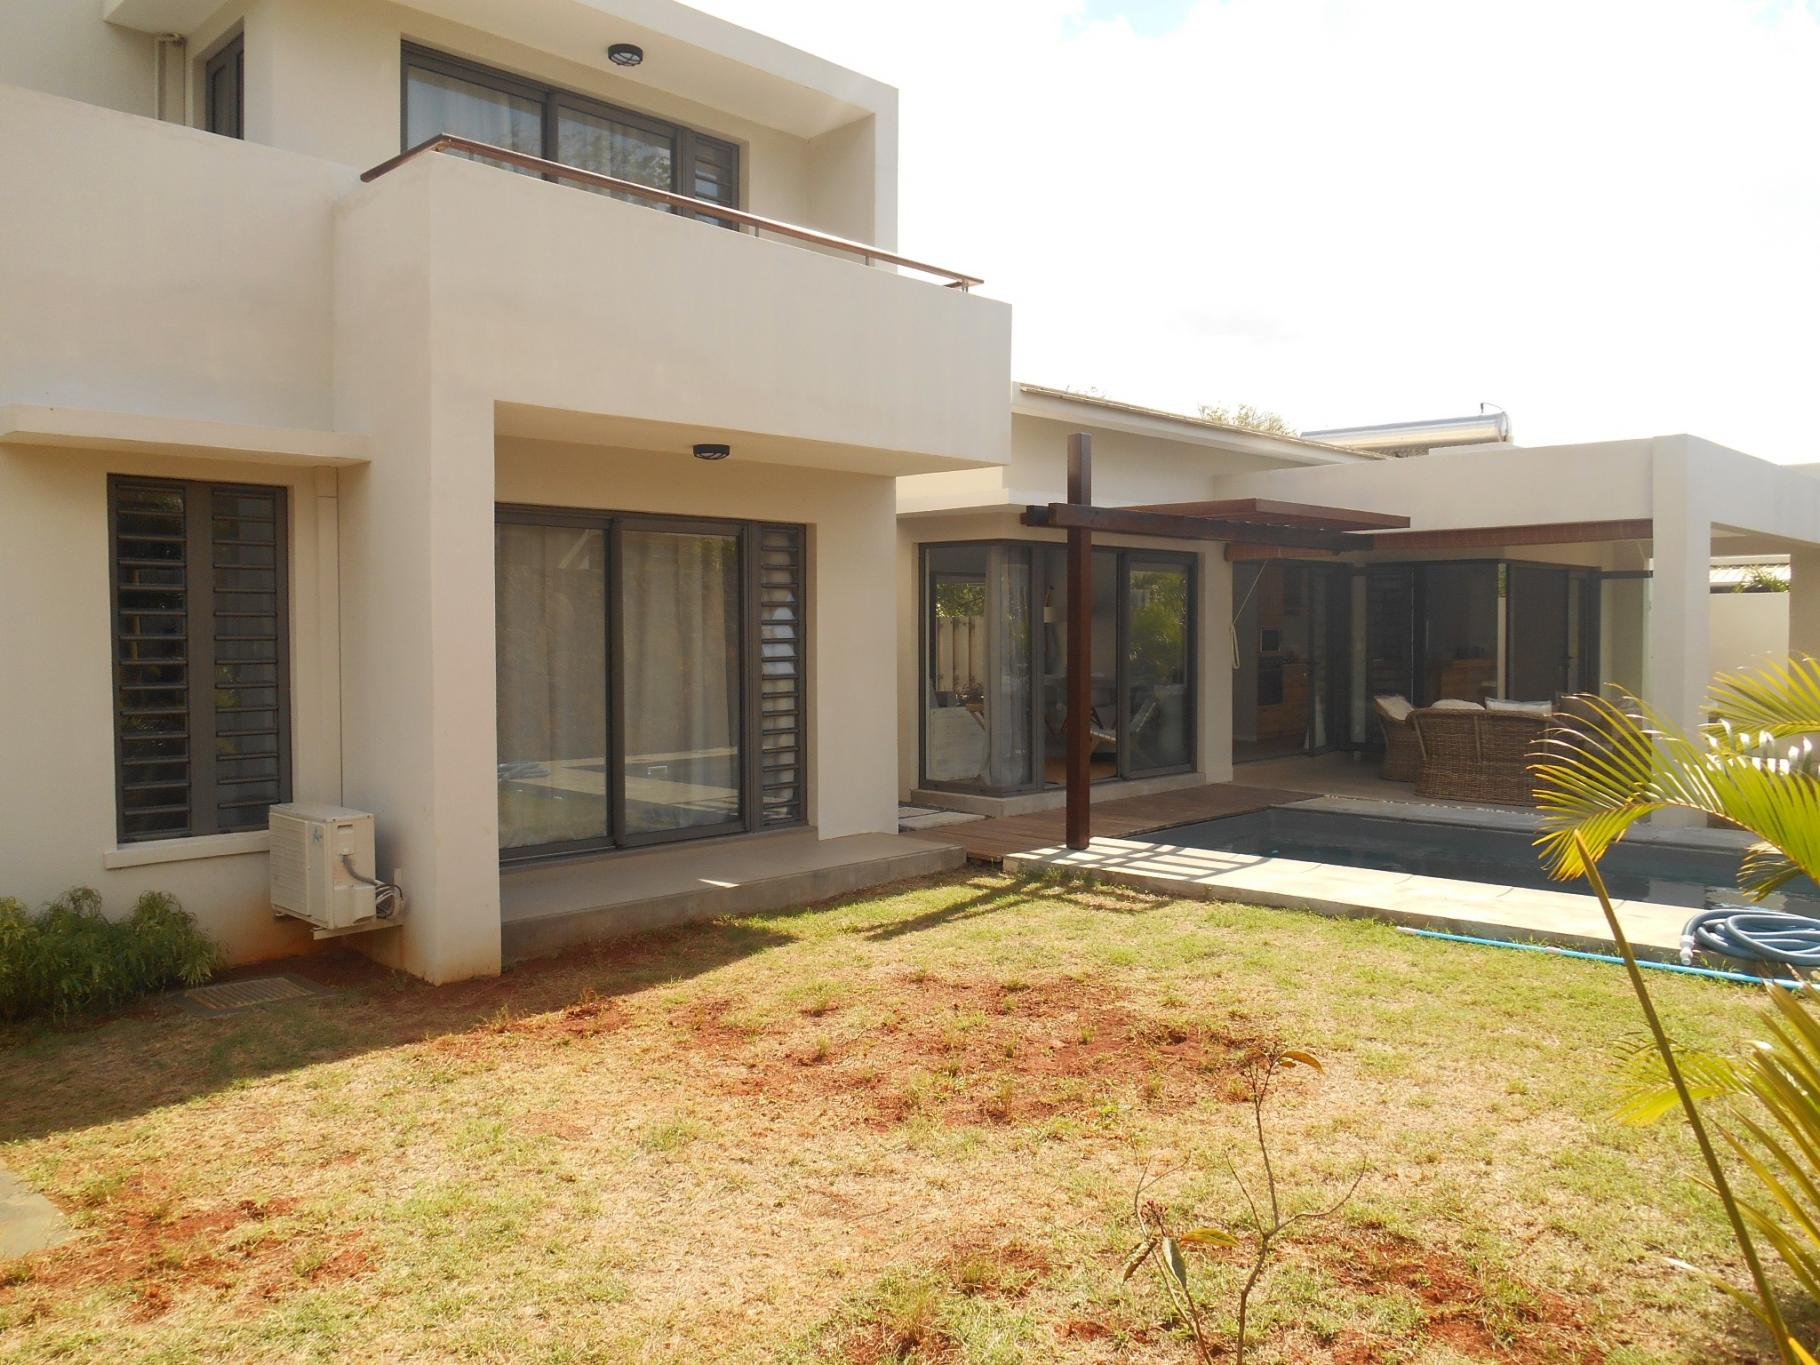 TO RENT – Beautiful furnished house of 198 m2 in Pailles.